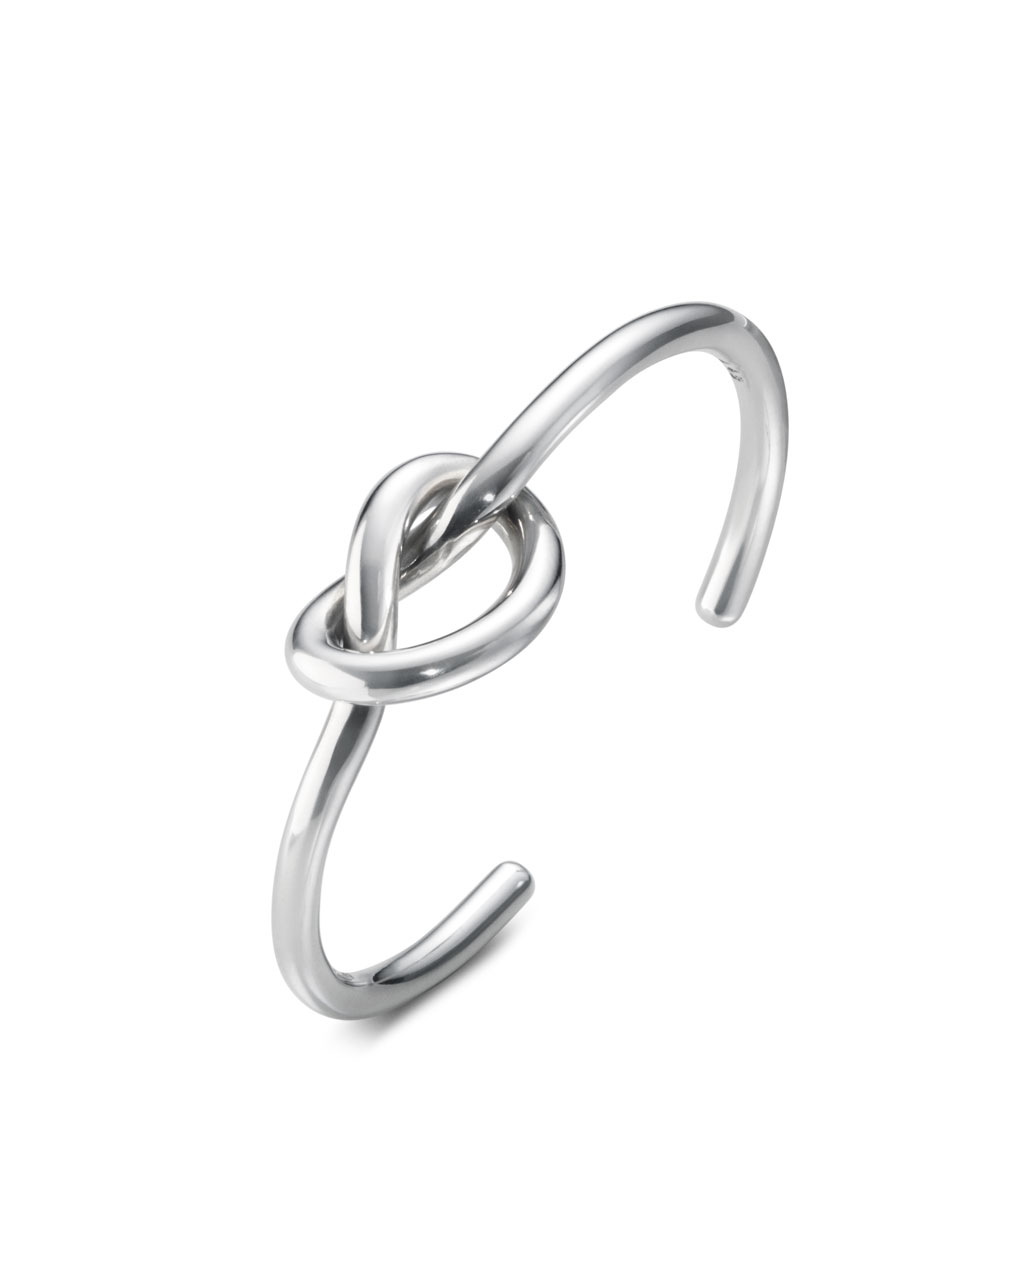 Georg Jensen LOVE KNOT SINGLE armring - 10003036 Armring størrelse L